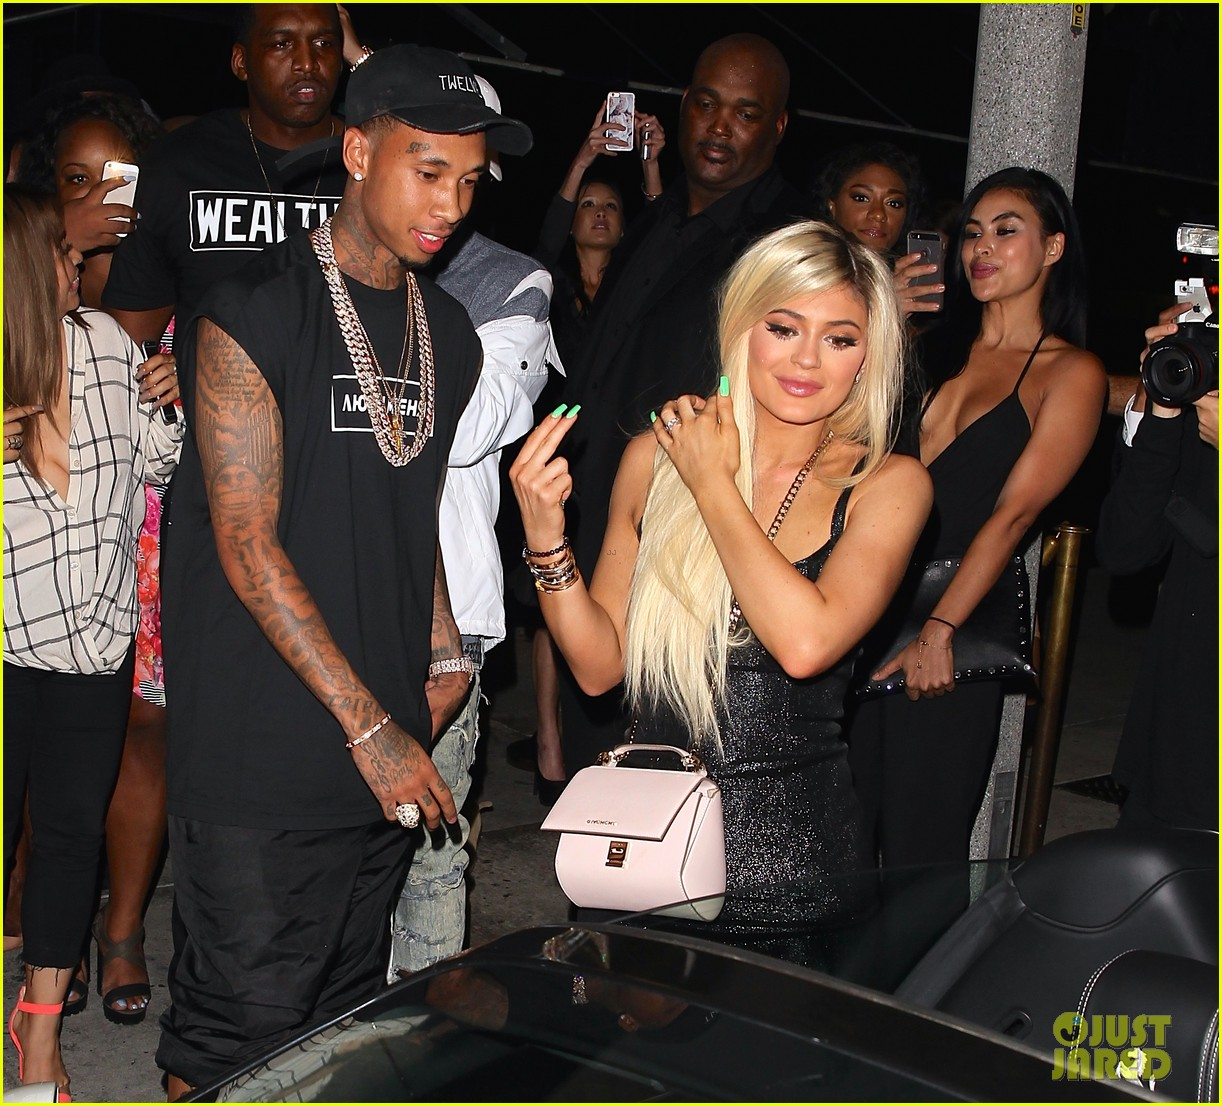 tyga and kylie jenner dating gross